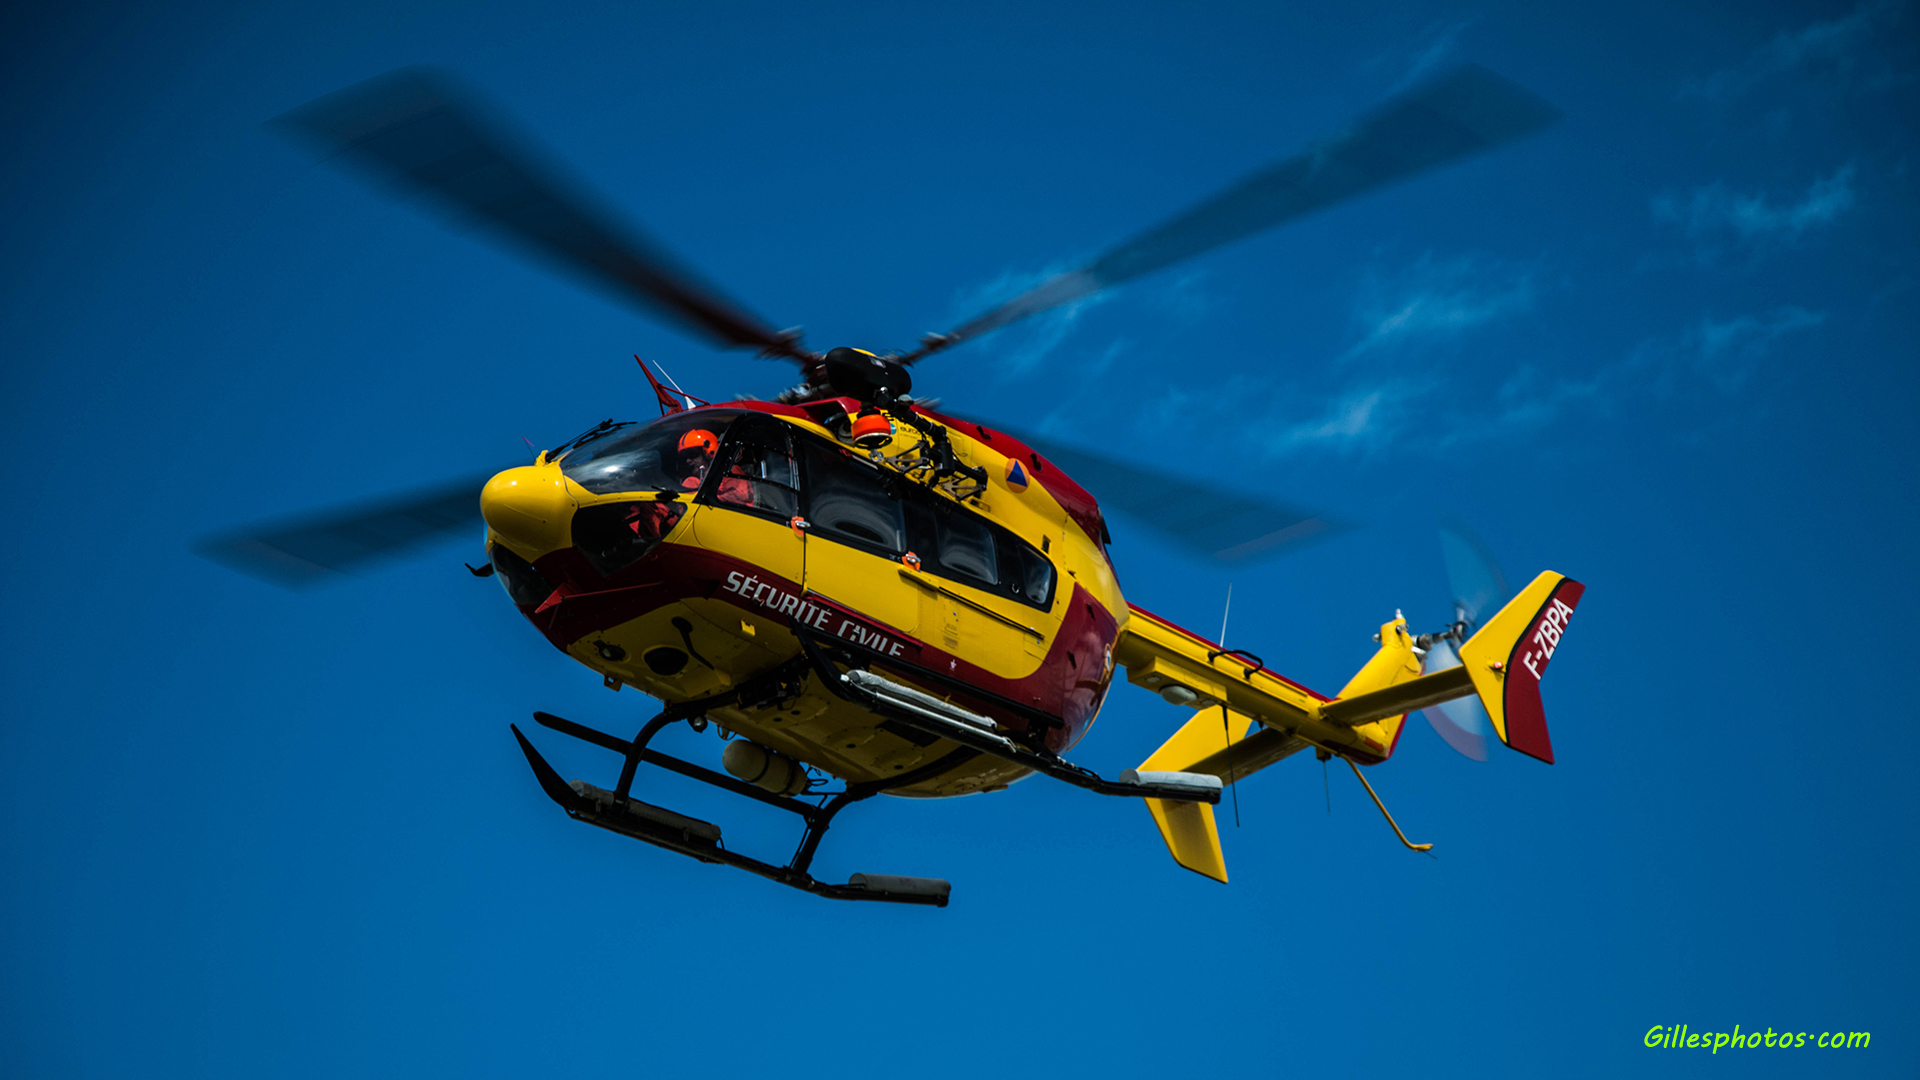 helicoptere secours en intervention